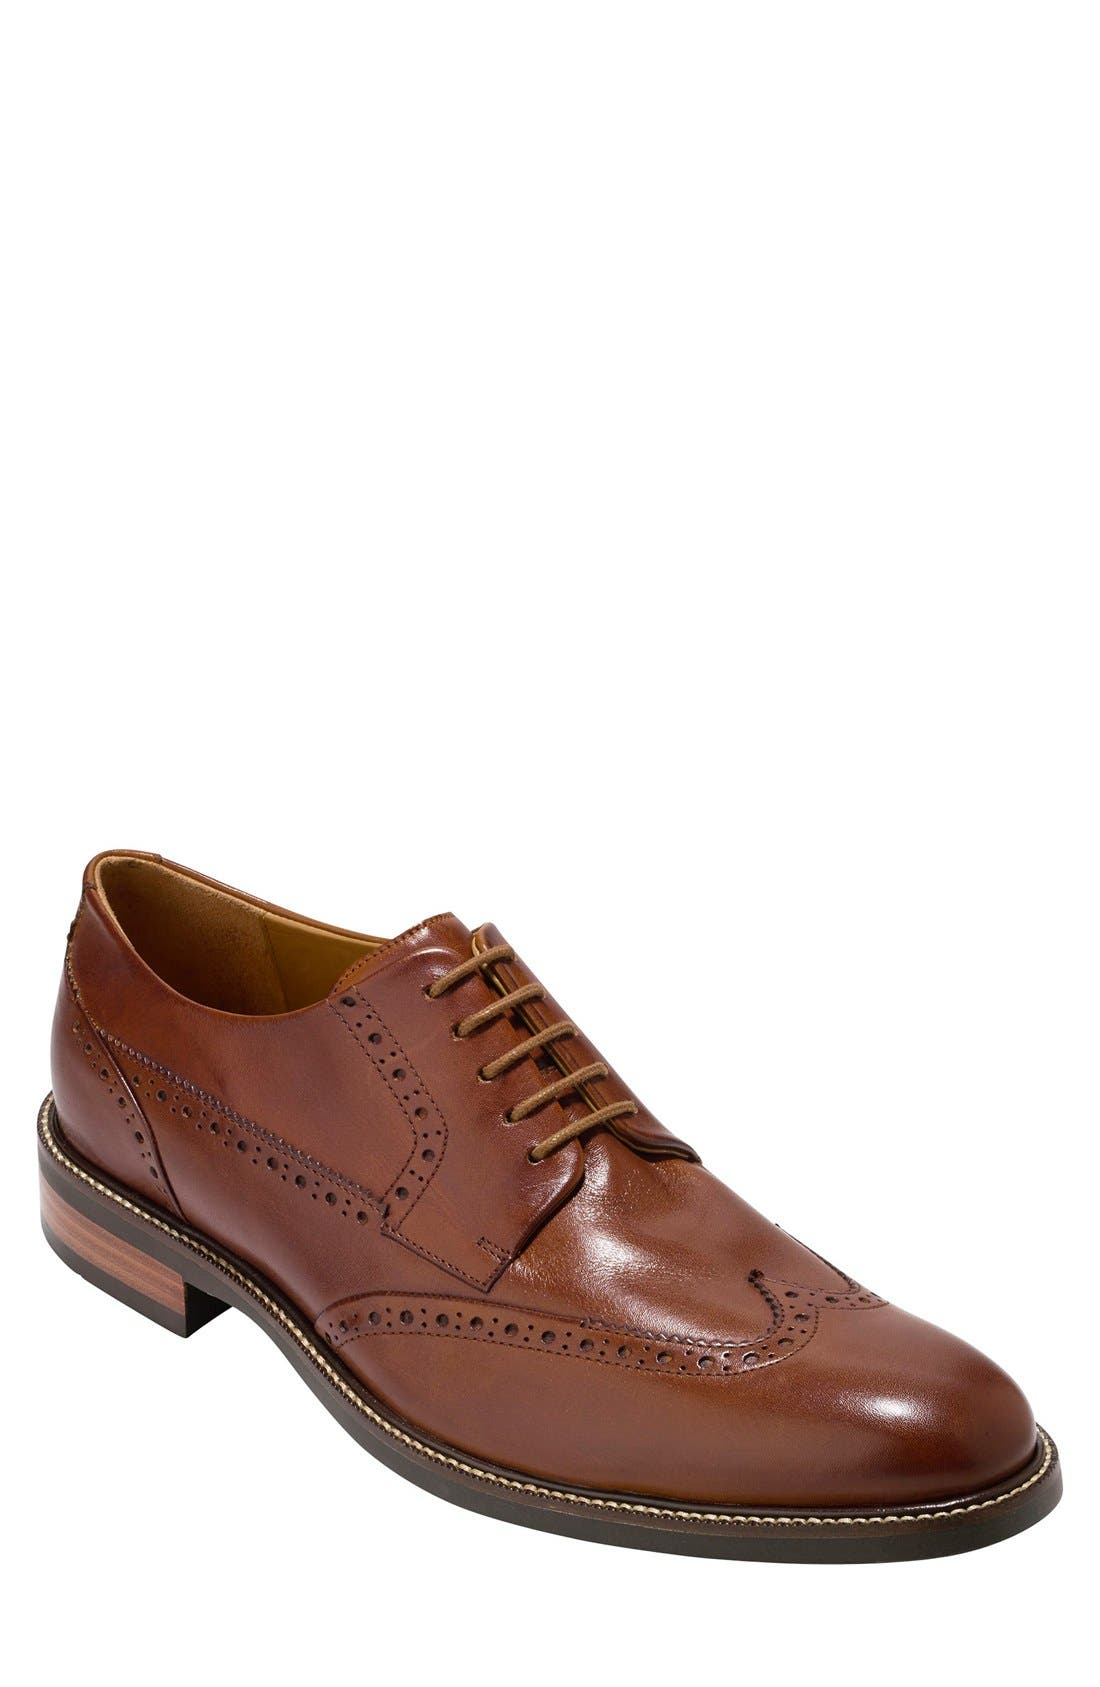 COLE HAAN 'Warren' Wingtip Oxford